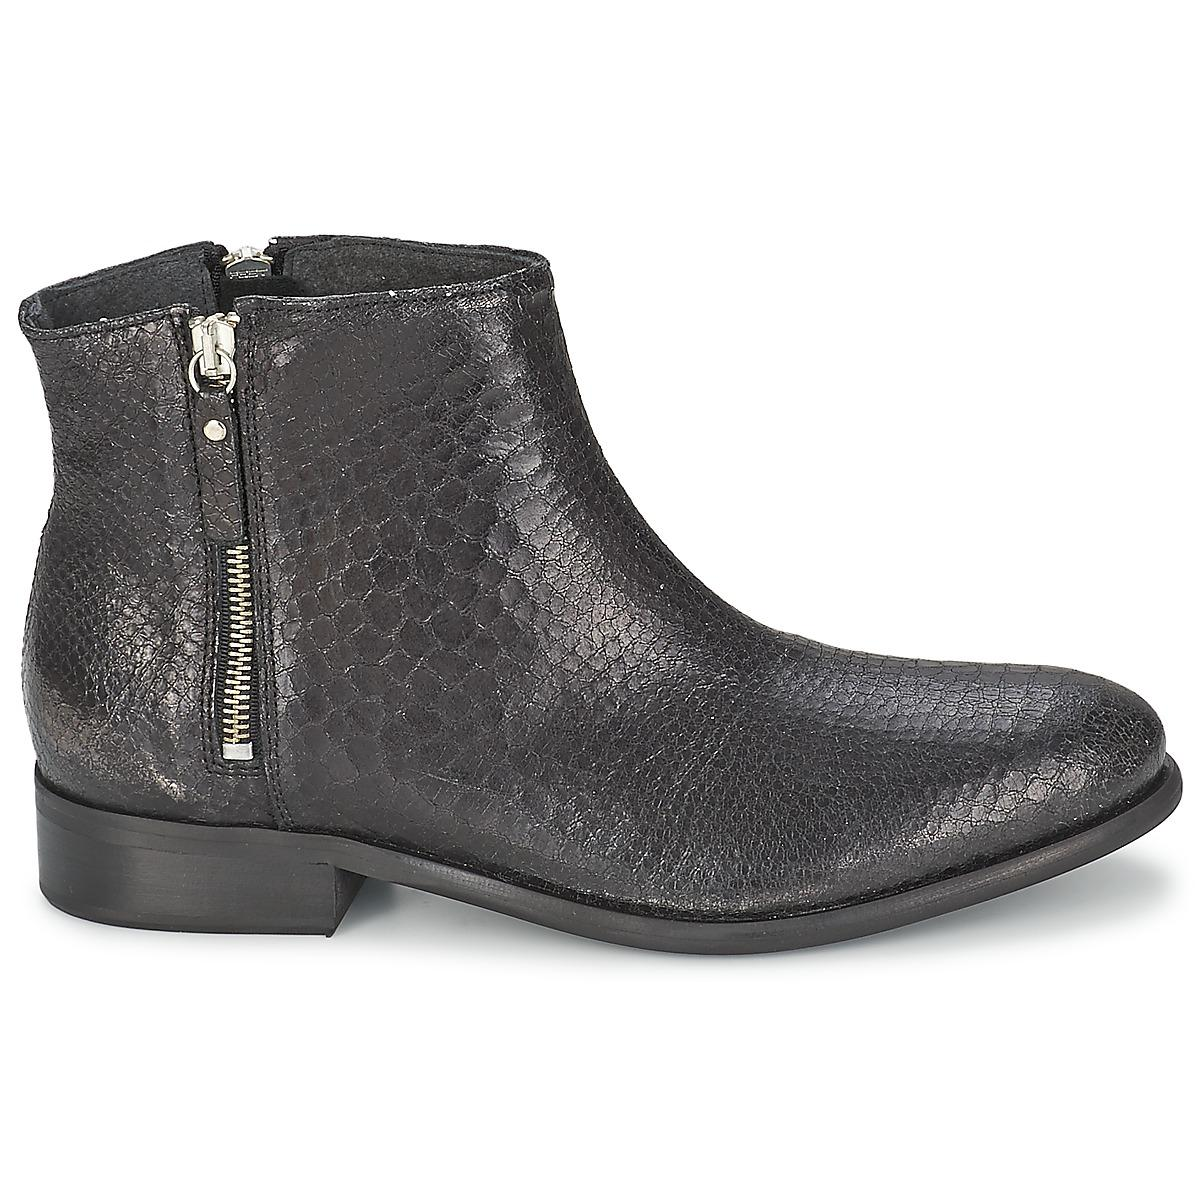 Nome Footwear Leather Makiko Chic Women's Mid Boots In Black